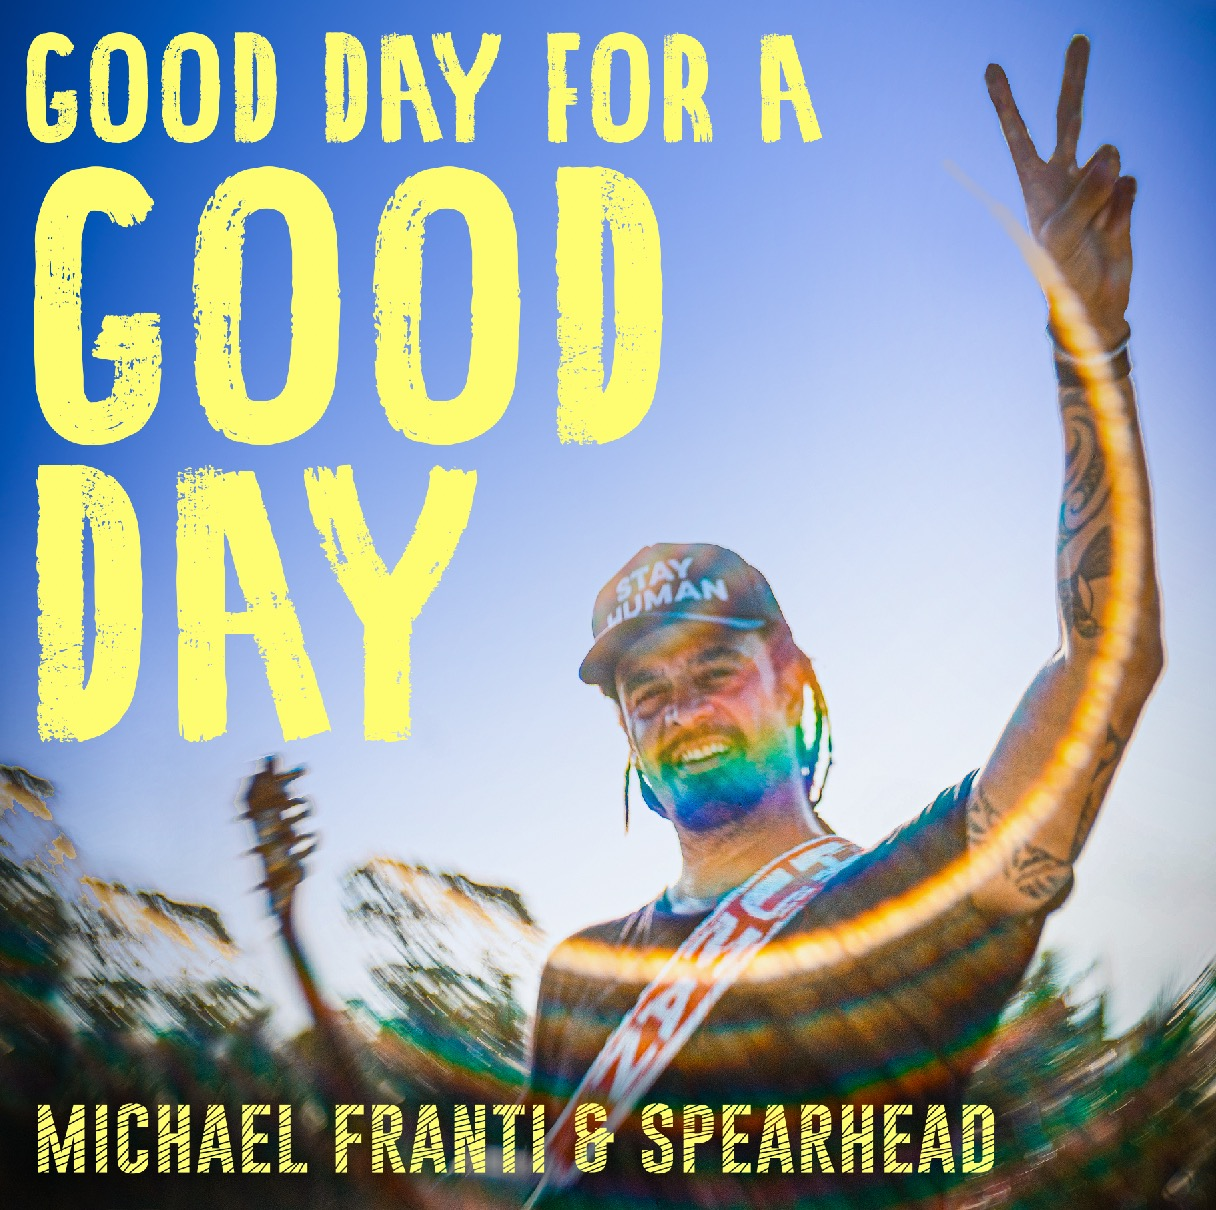 NEW MUSIC: GOOD DAY FOR A GOOD DAY!